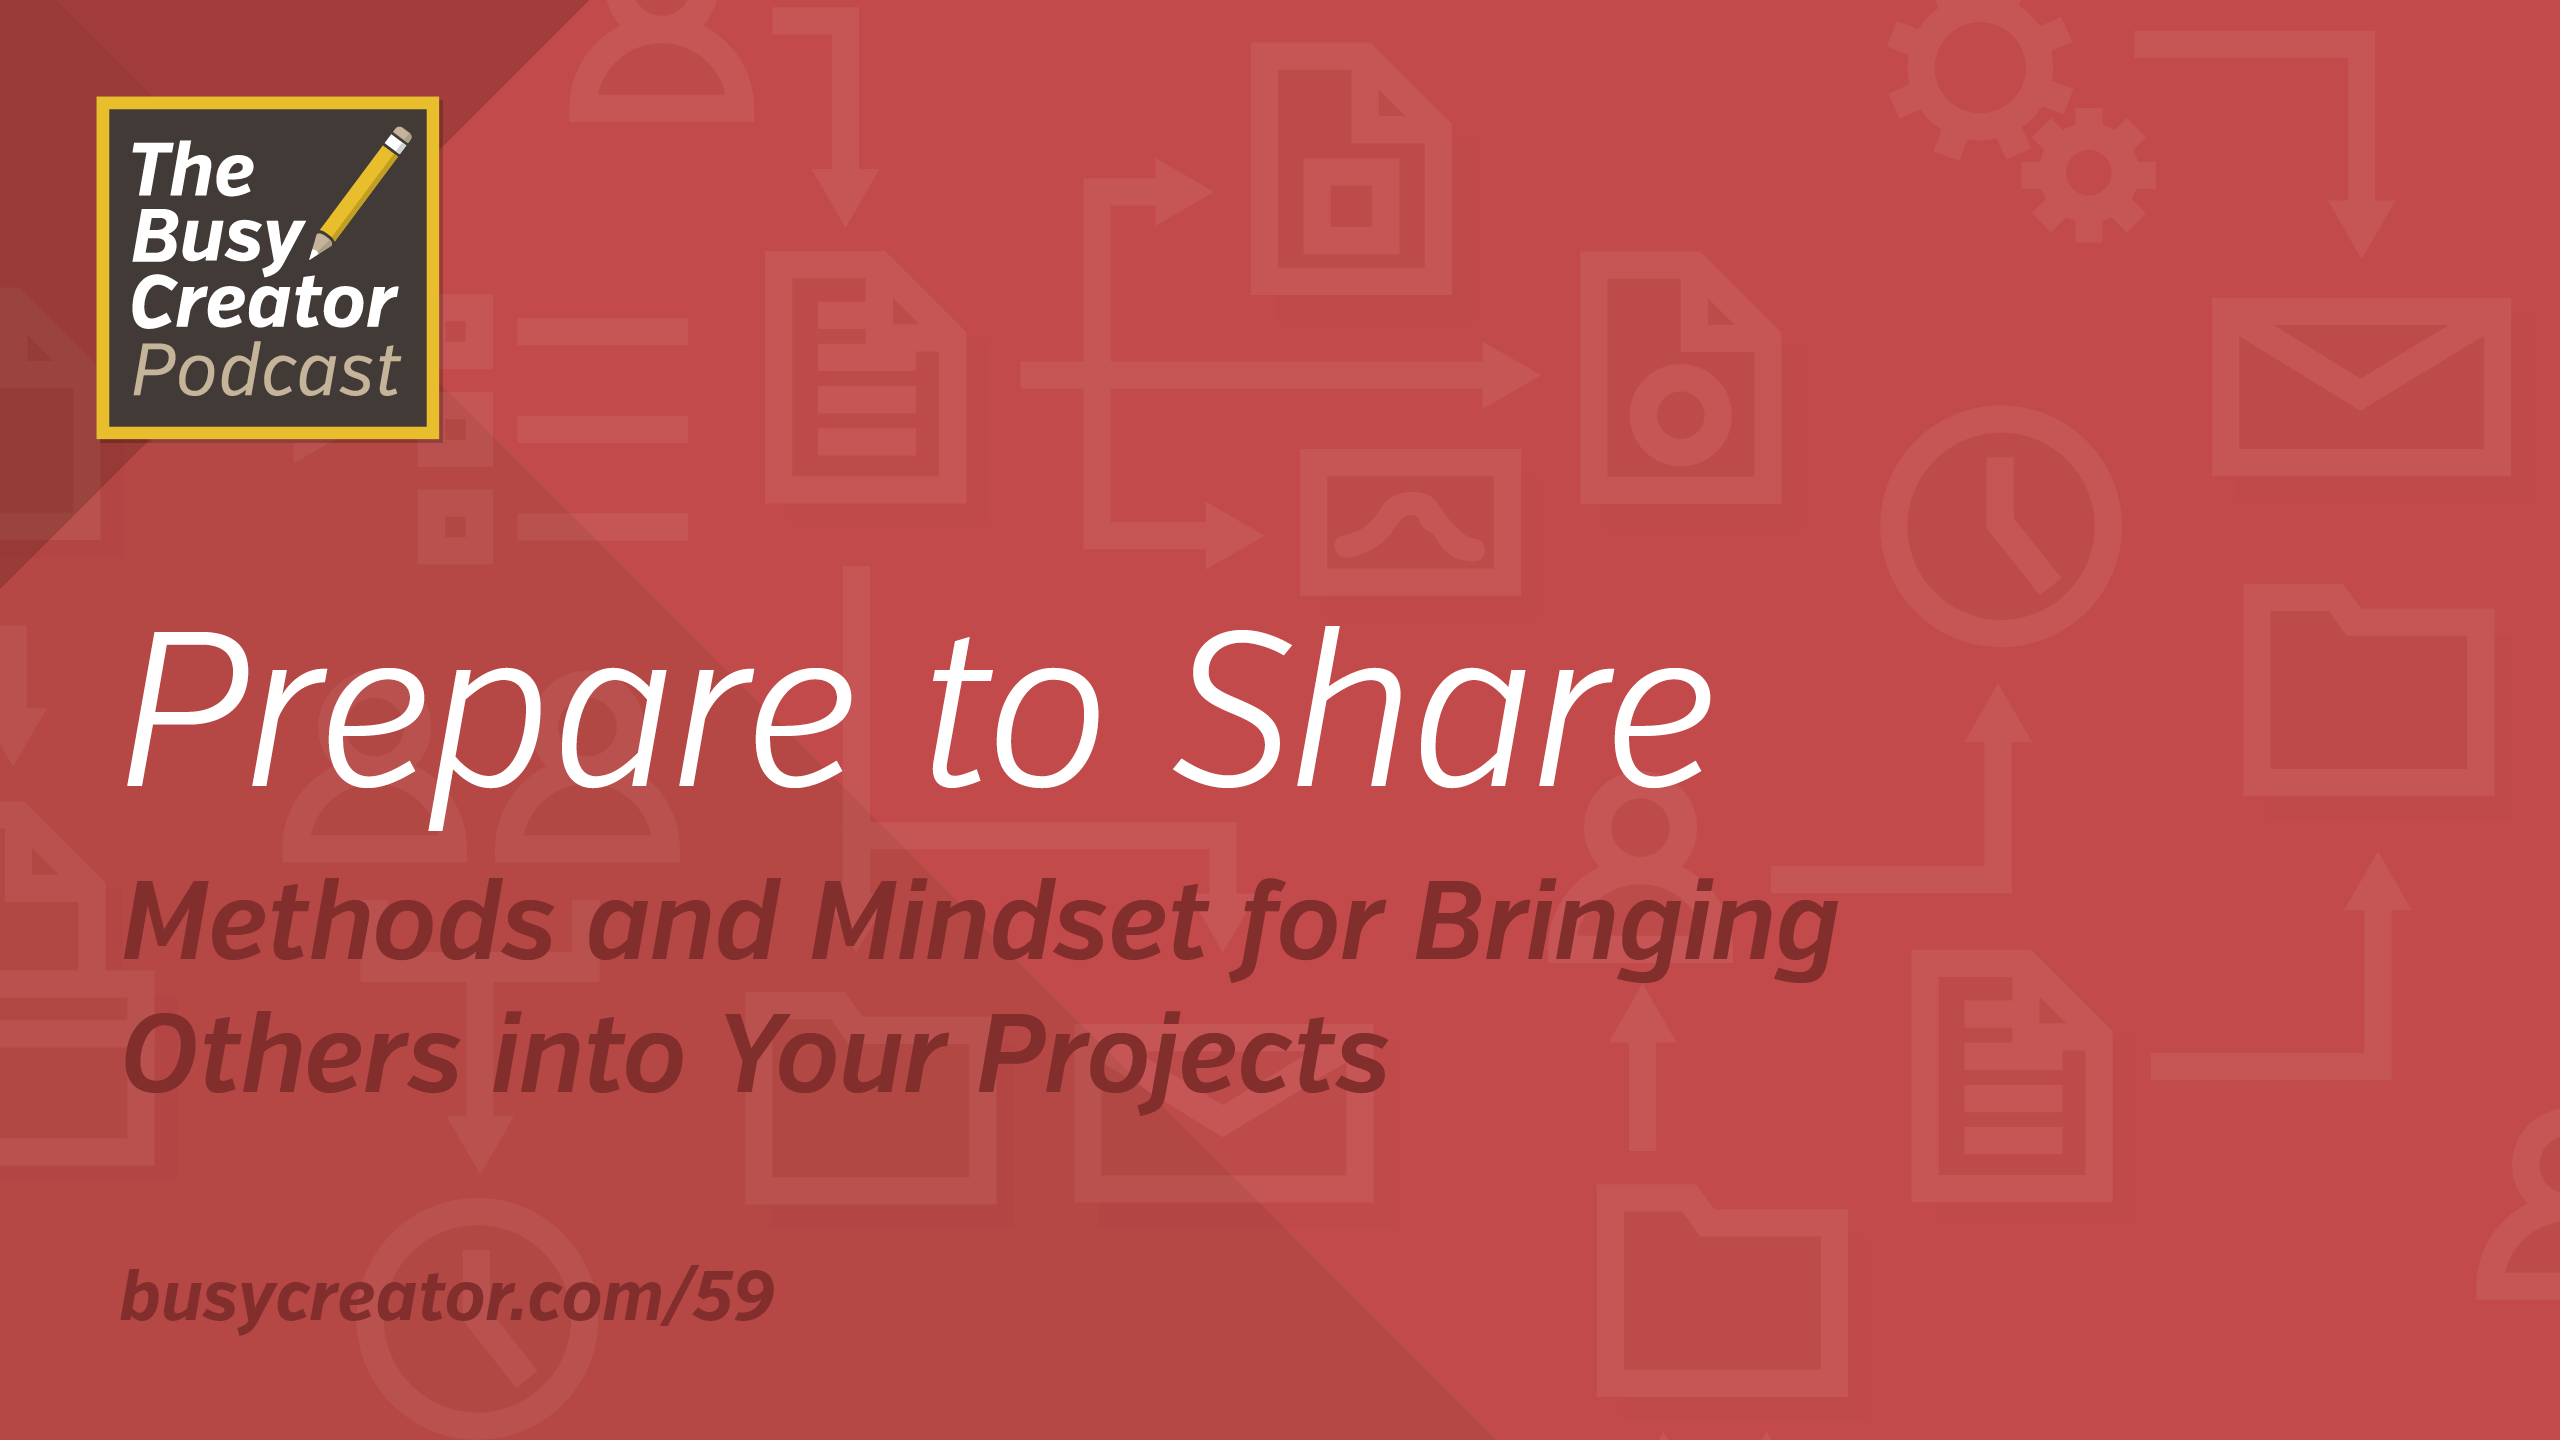 Prepare to Share: Methods and Mindset for Bringing Others into Your Projects